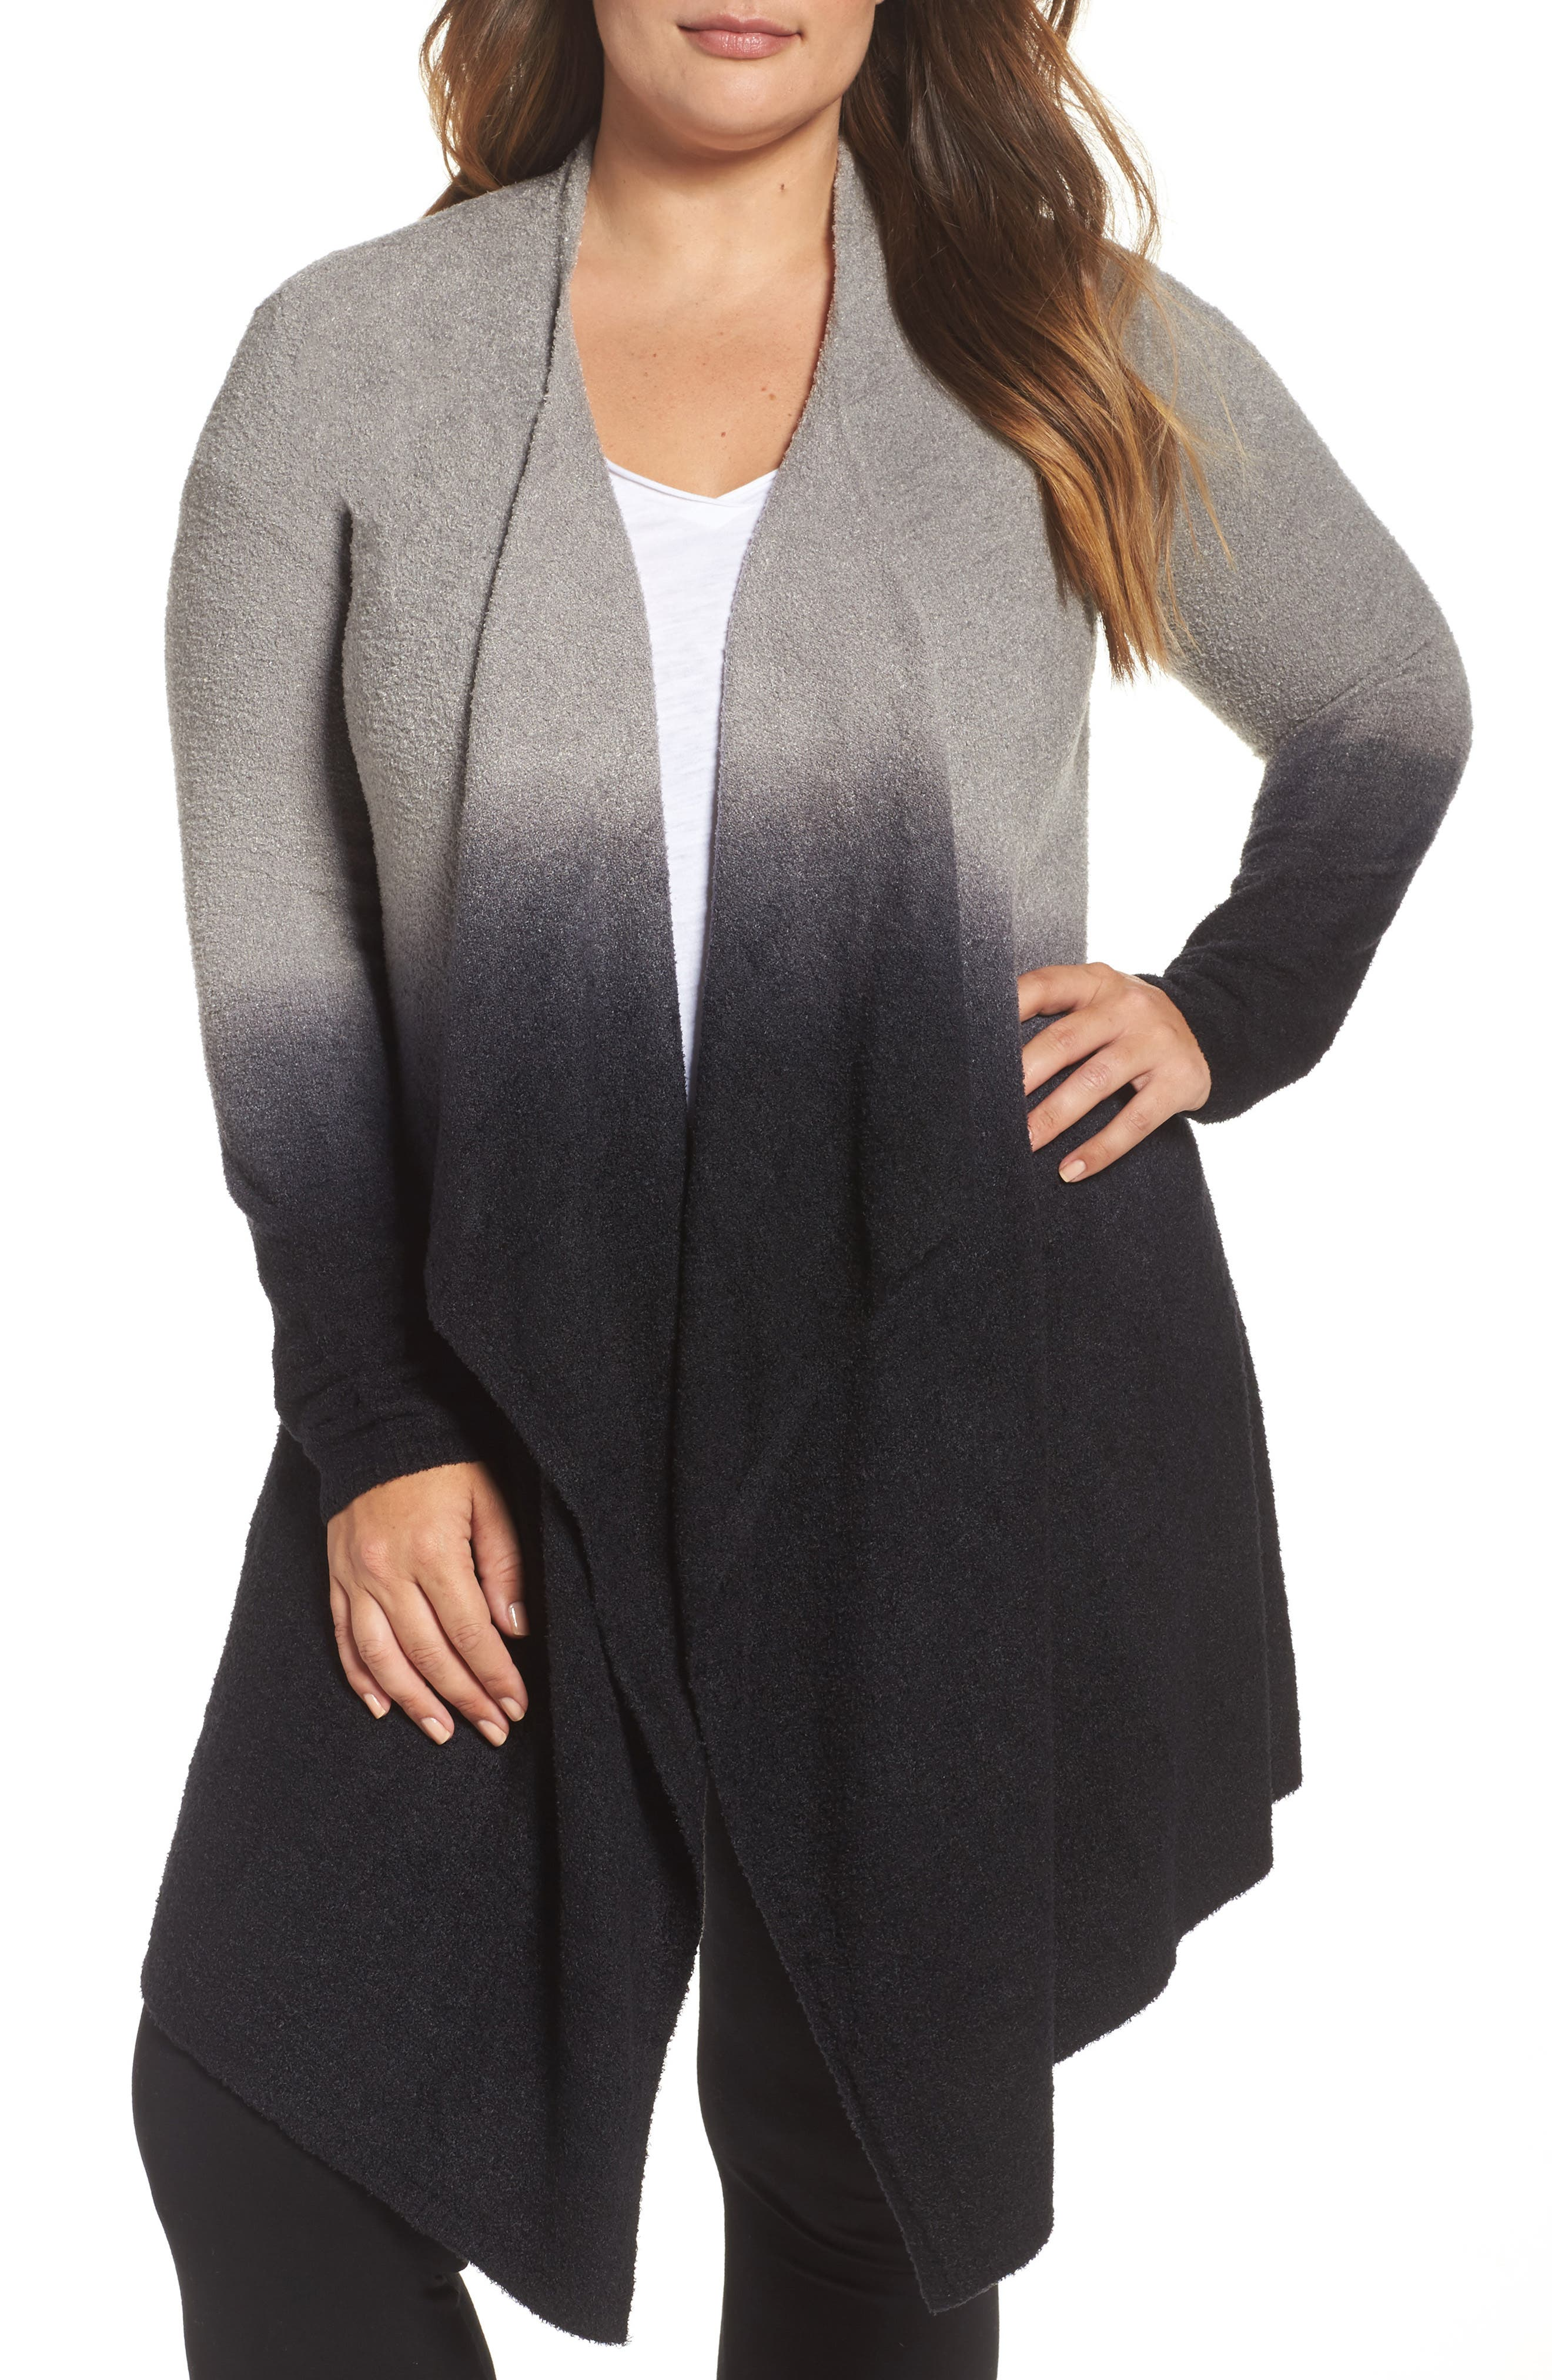 Main Image - Barefoot Dreams® CozyChic Lite® Calypso Wrap Cardigan (Plus Size) (Nordstrom Exclusive)